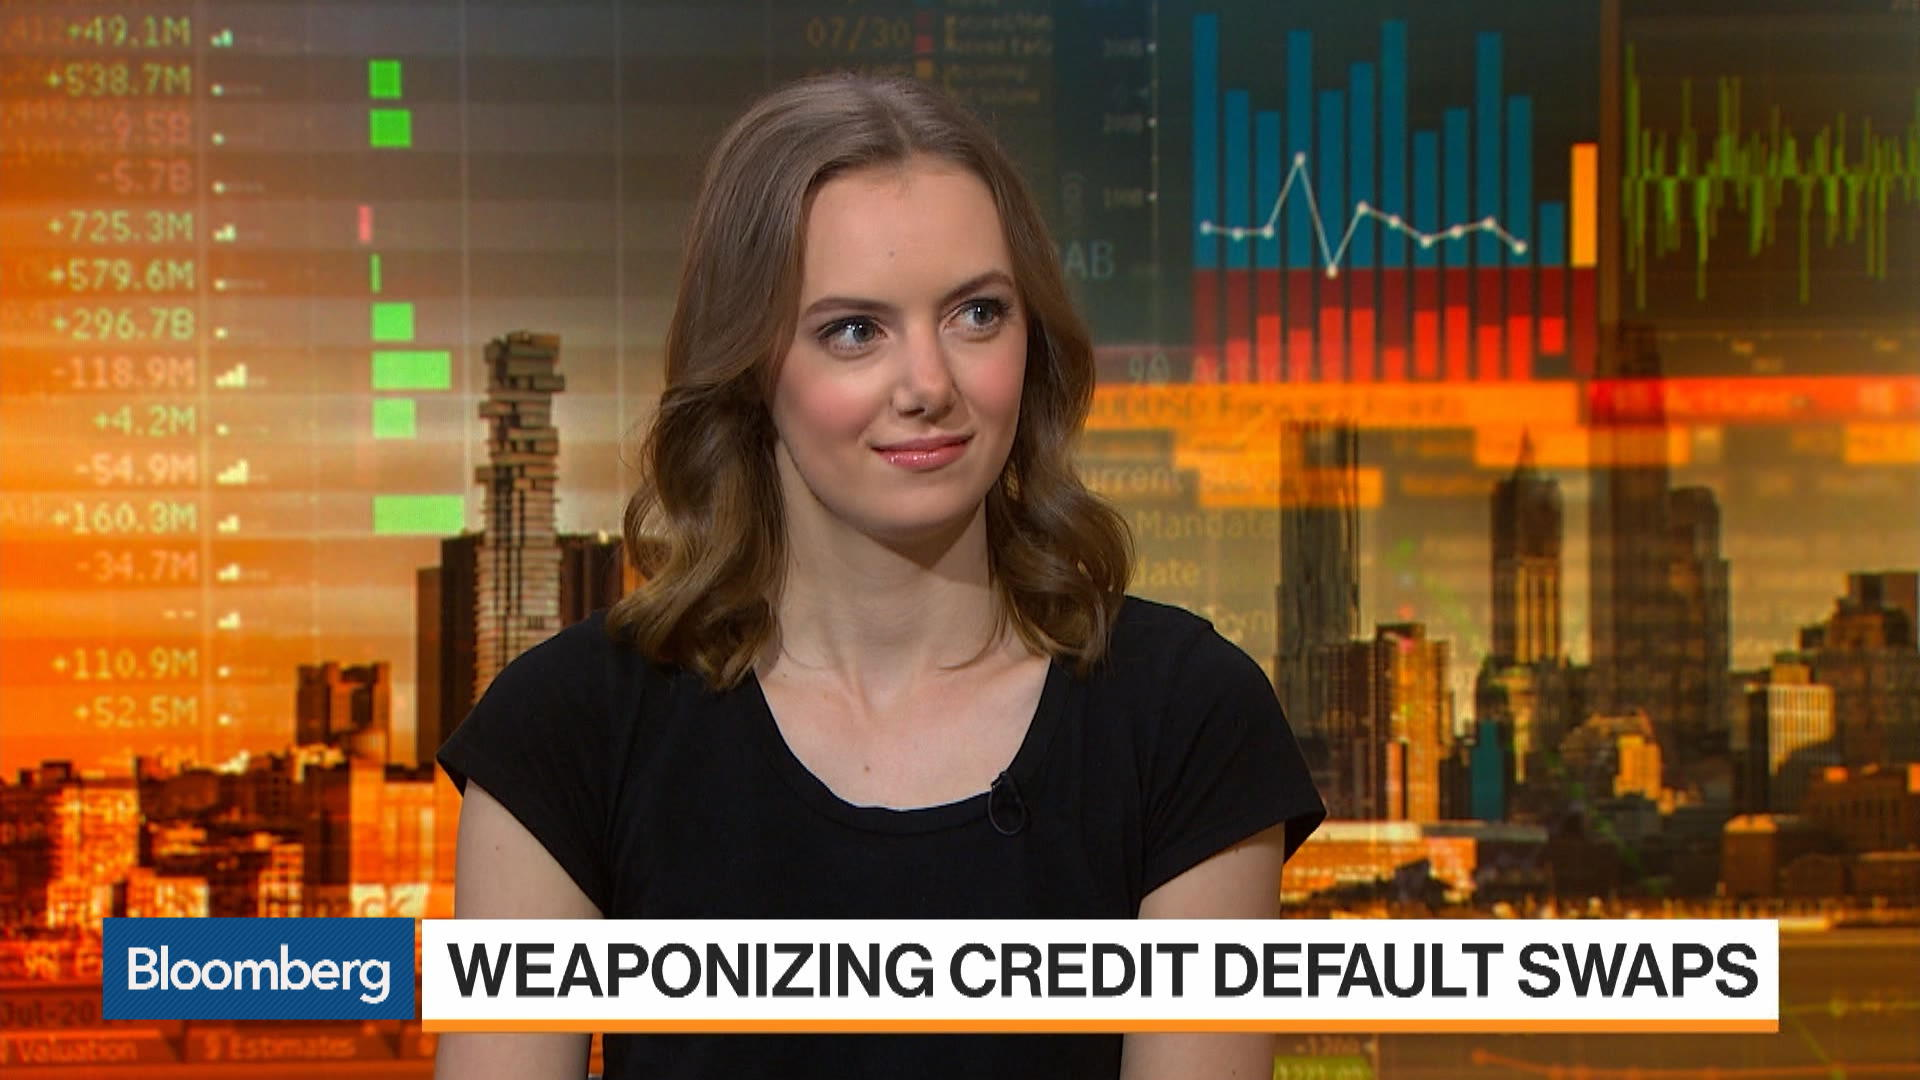 Hedge Funds Investing in Credit-Default Swaps Pressure Companies to Default